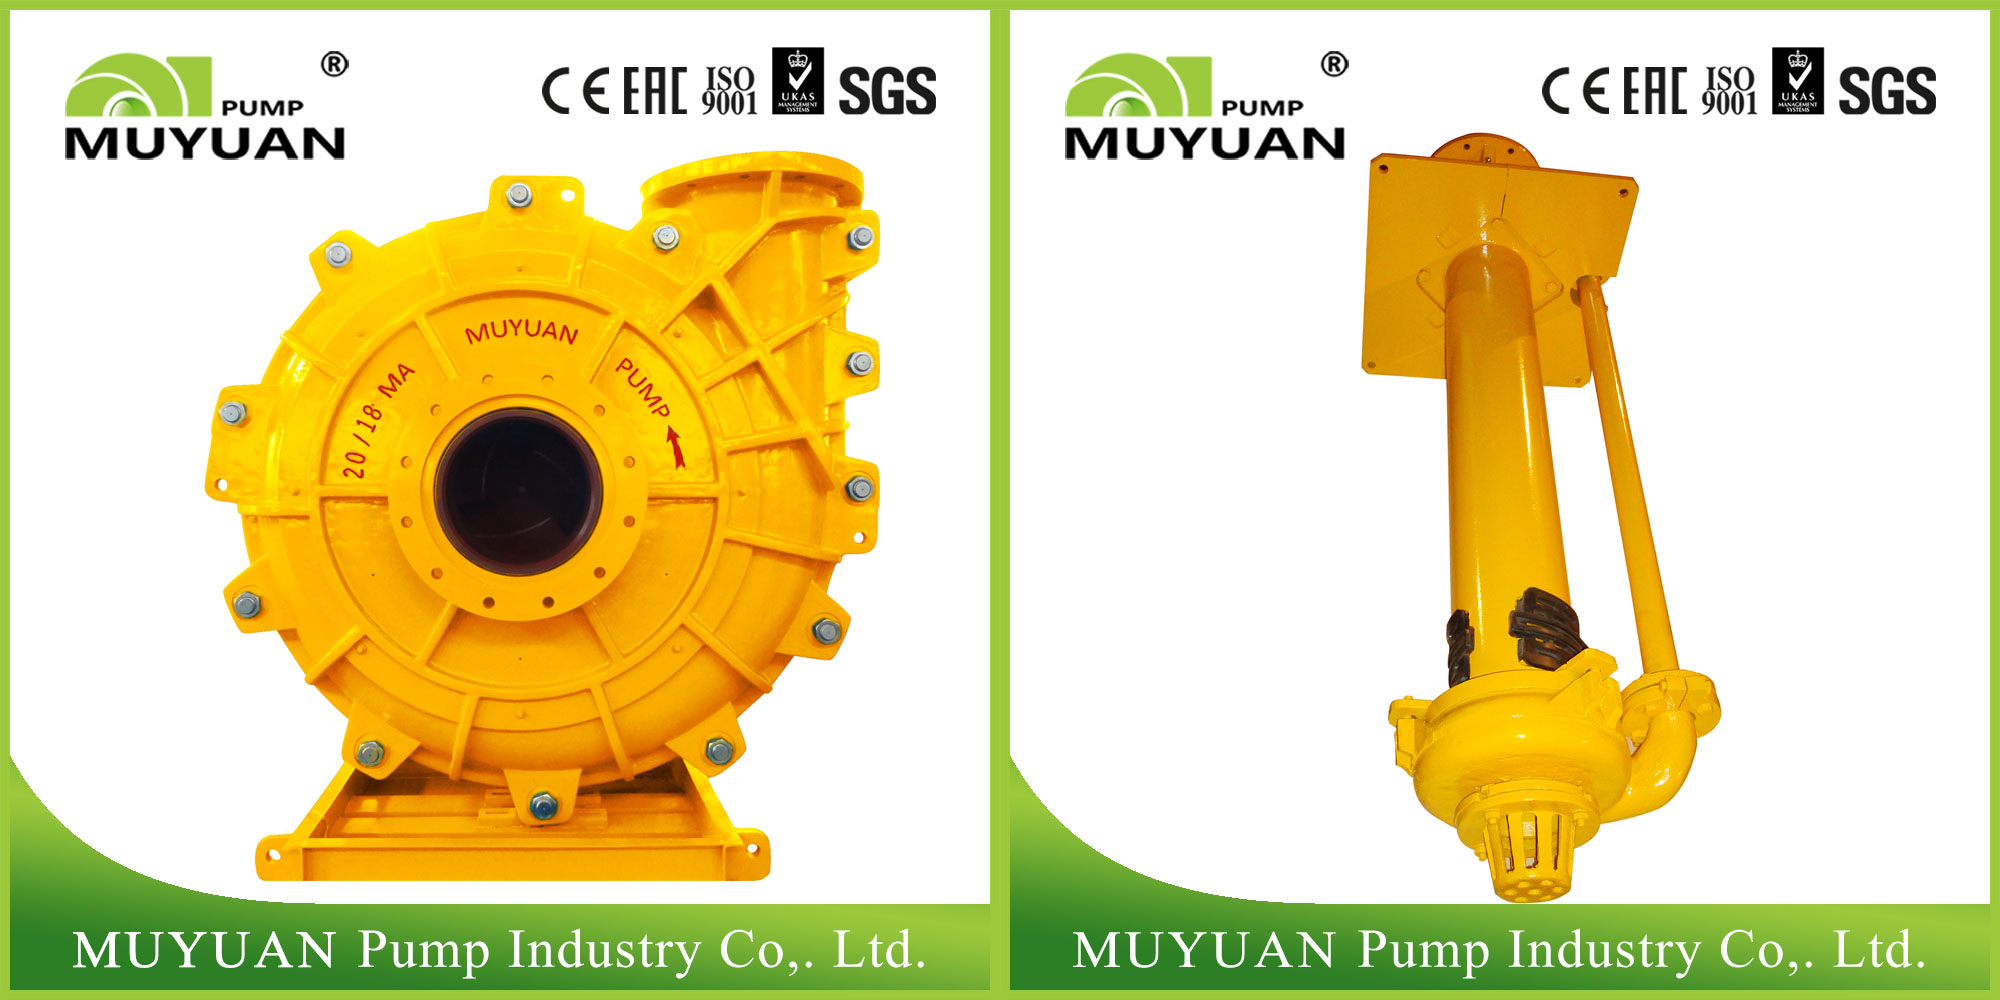 Difference Between Vertical Sump Pumps and Horizontal Slurry Pumps